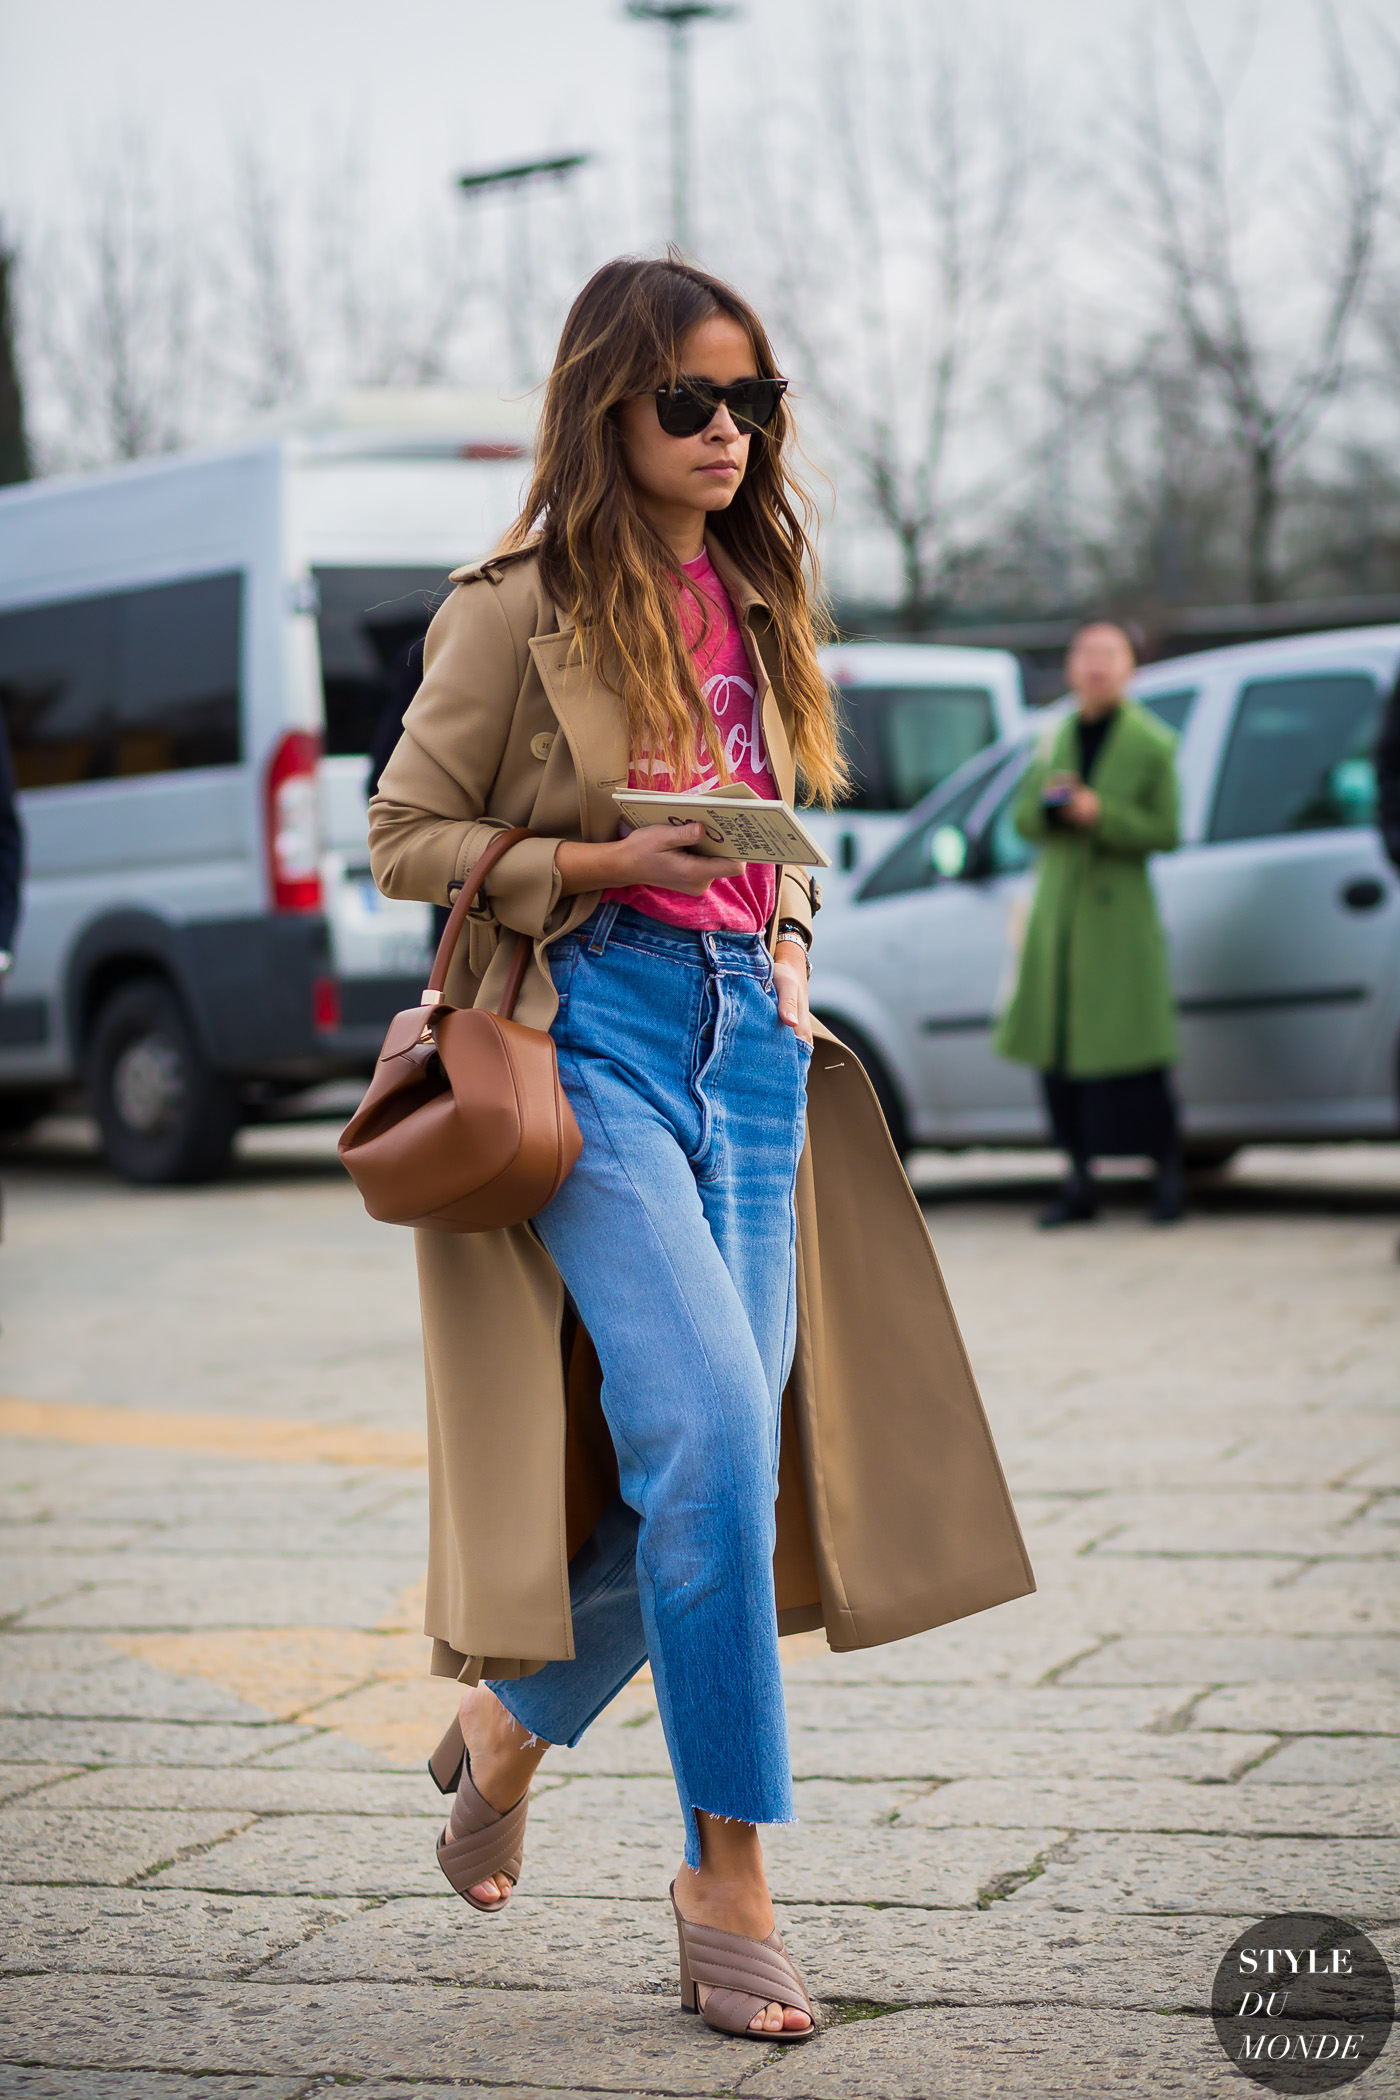 Miroslava-Duma-Mira-Duma-by-STYLEDUMONDE-Street-Style-Fashion-Photography0E2A5371